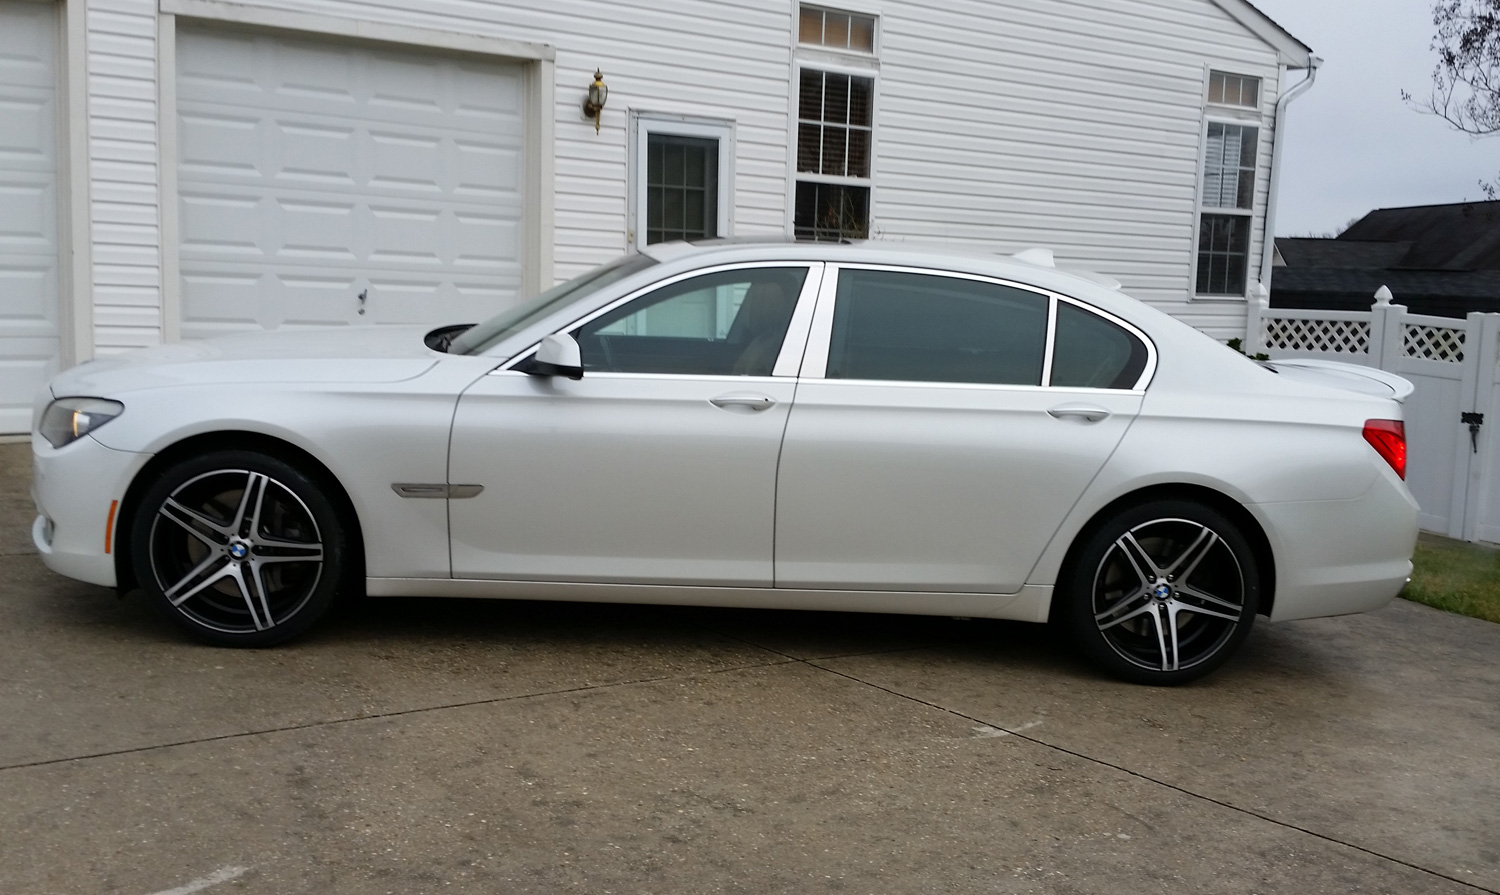 XO Caracas Black Brushed Wheels On BMW Series Li W - 2009 bmw 745